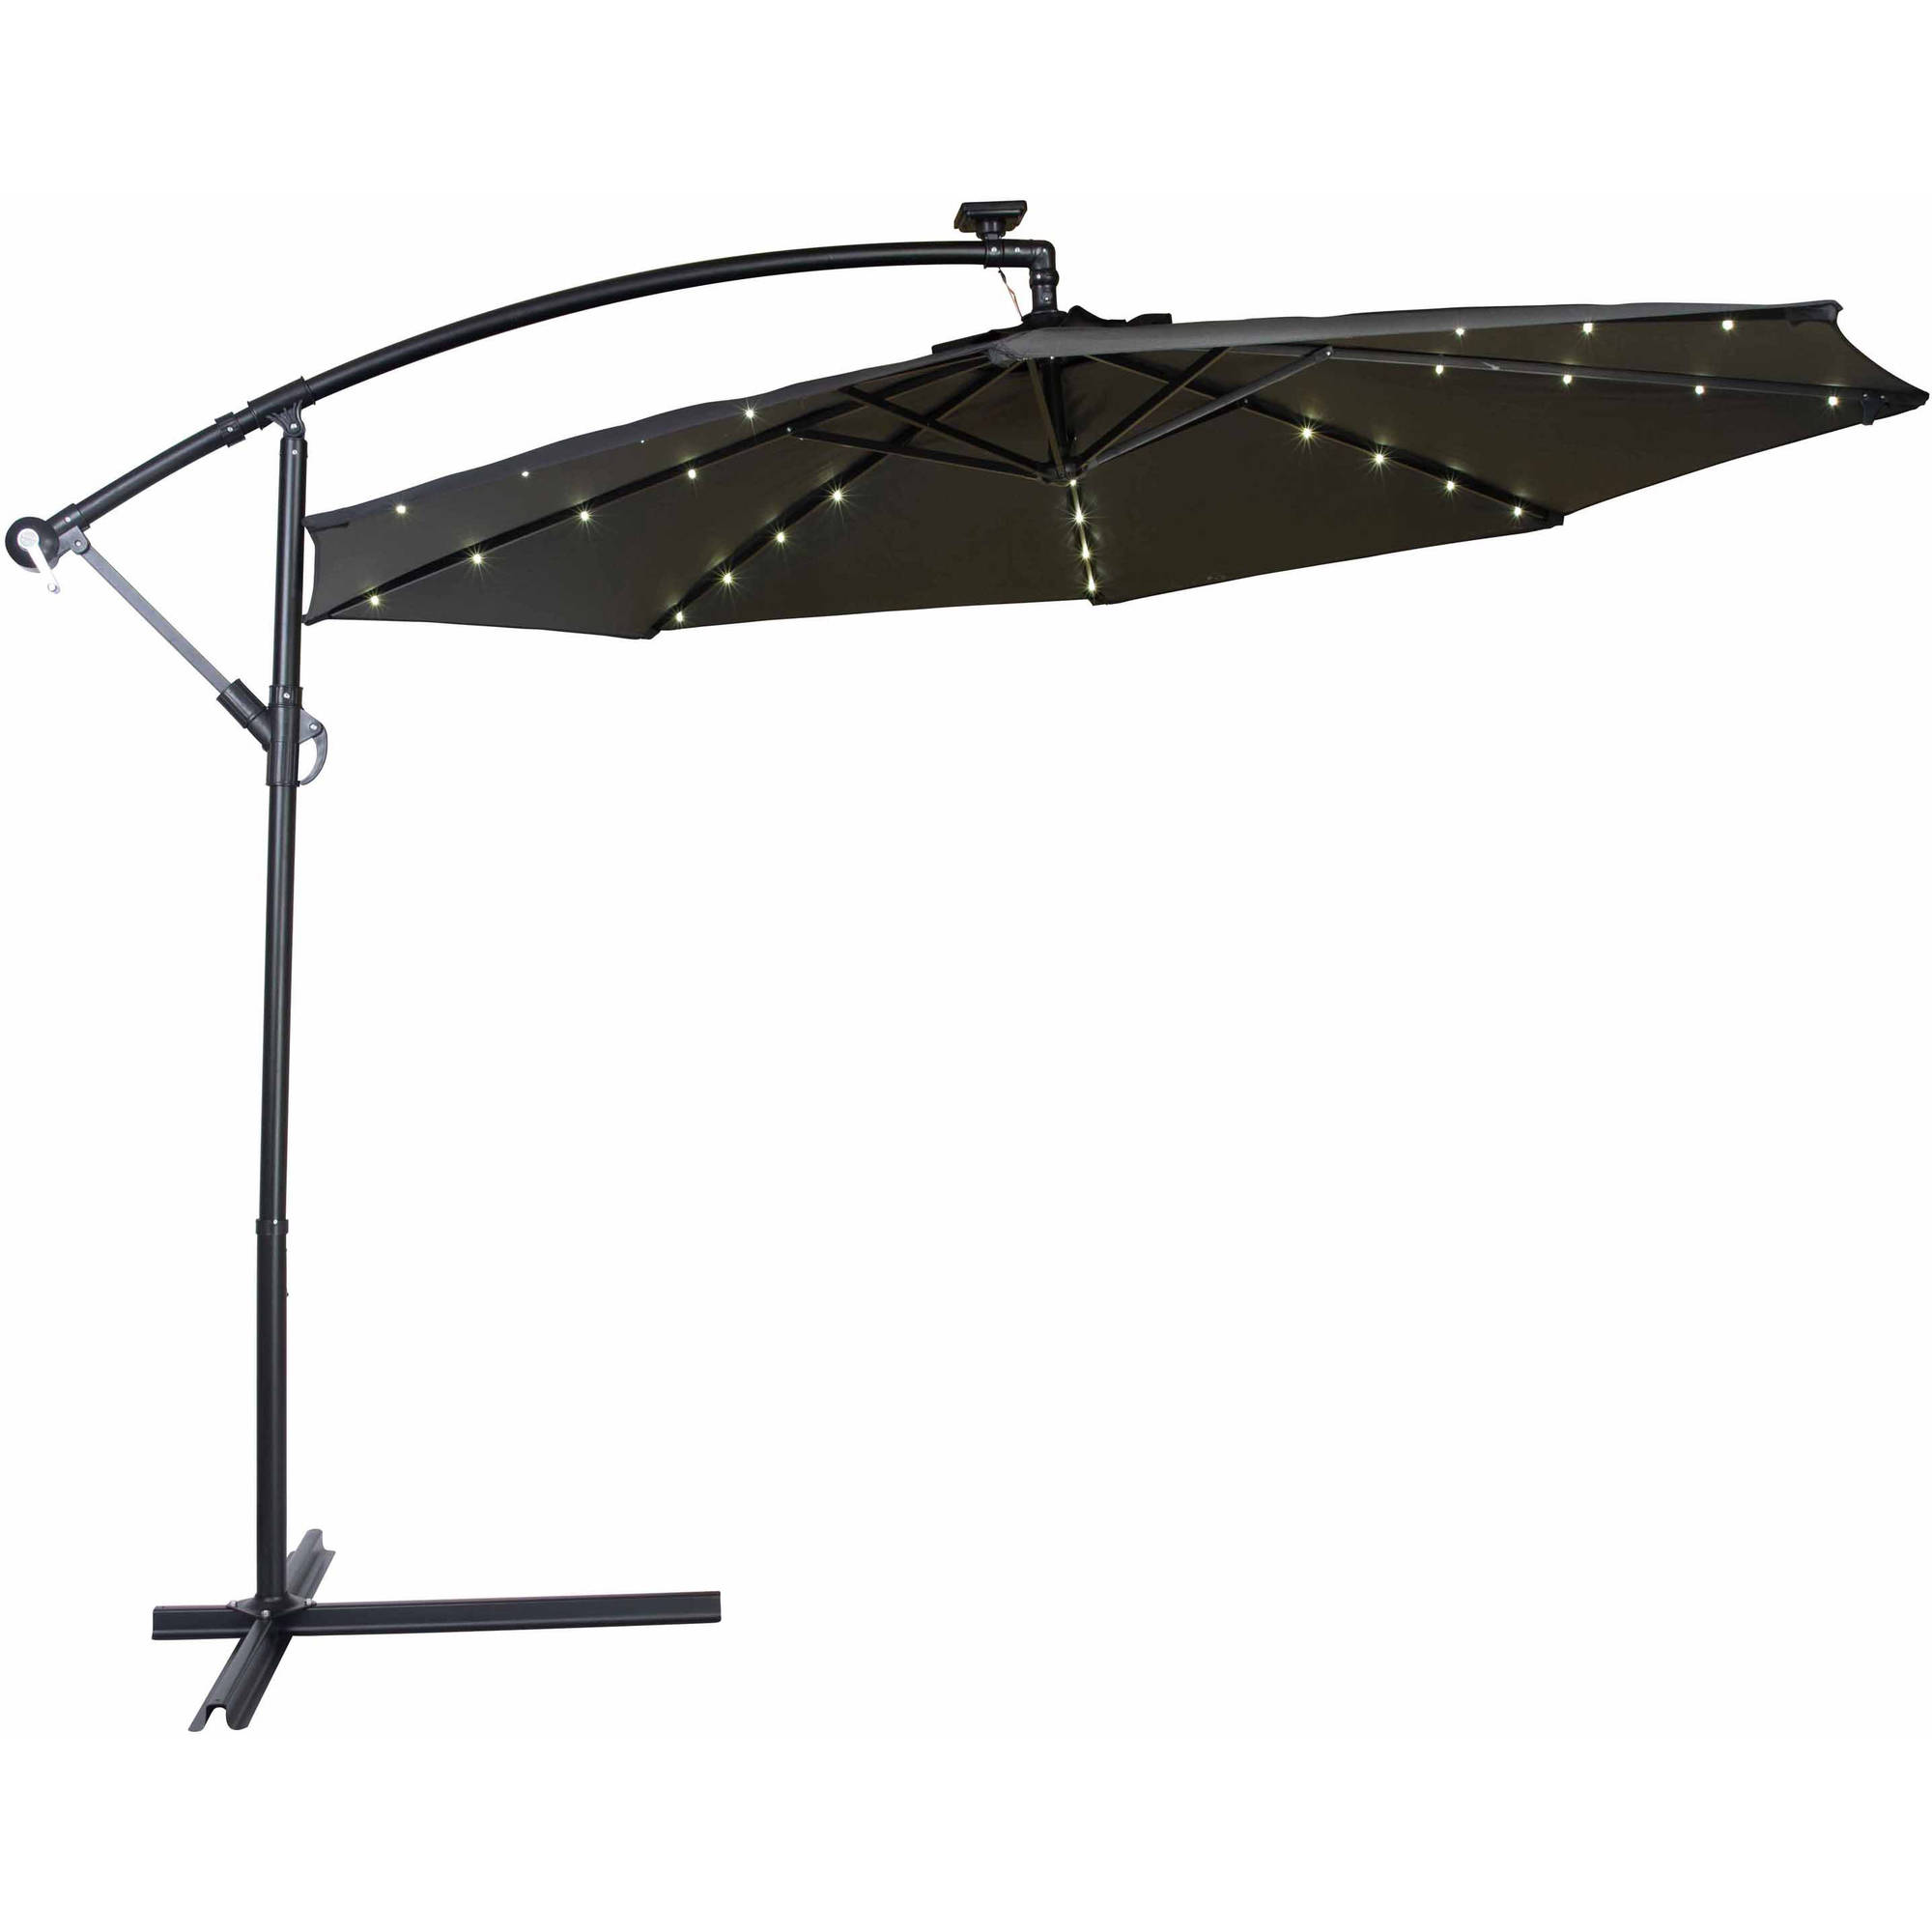 Perfect Deluxe Polyester Offset Patio Umbrella With LED Lights, 10u0027